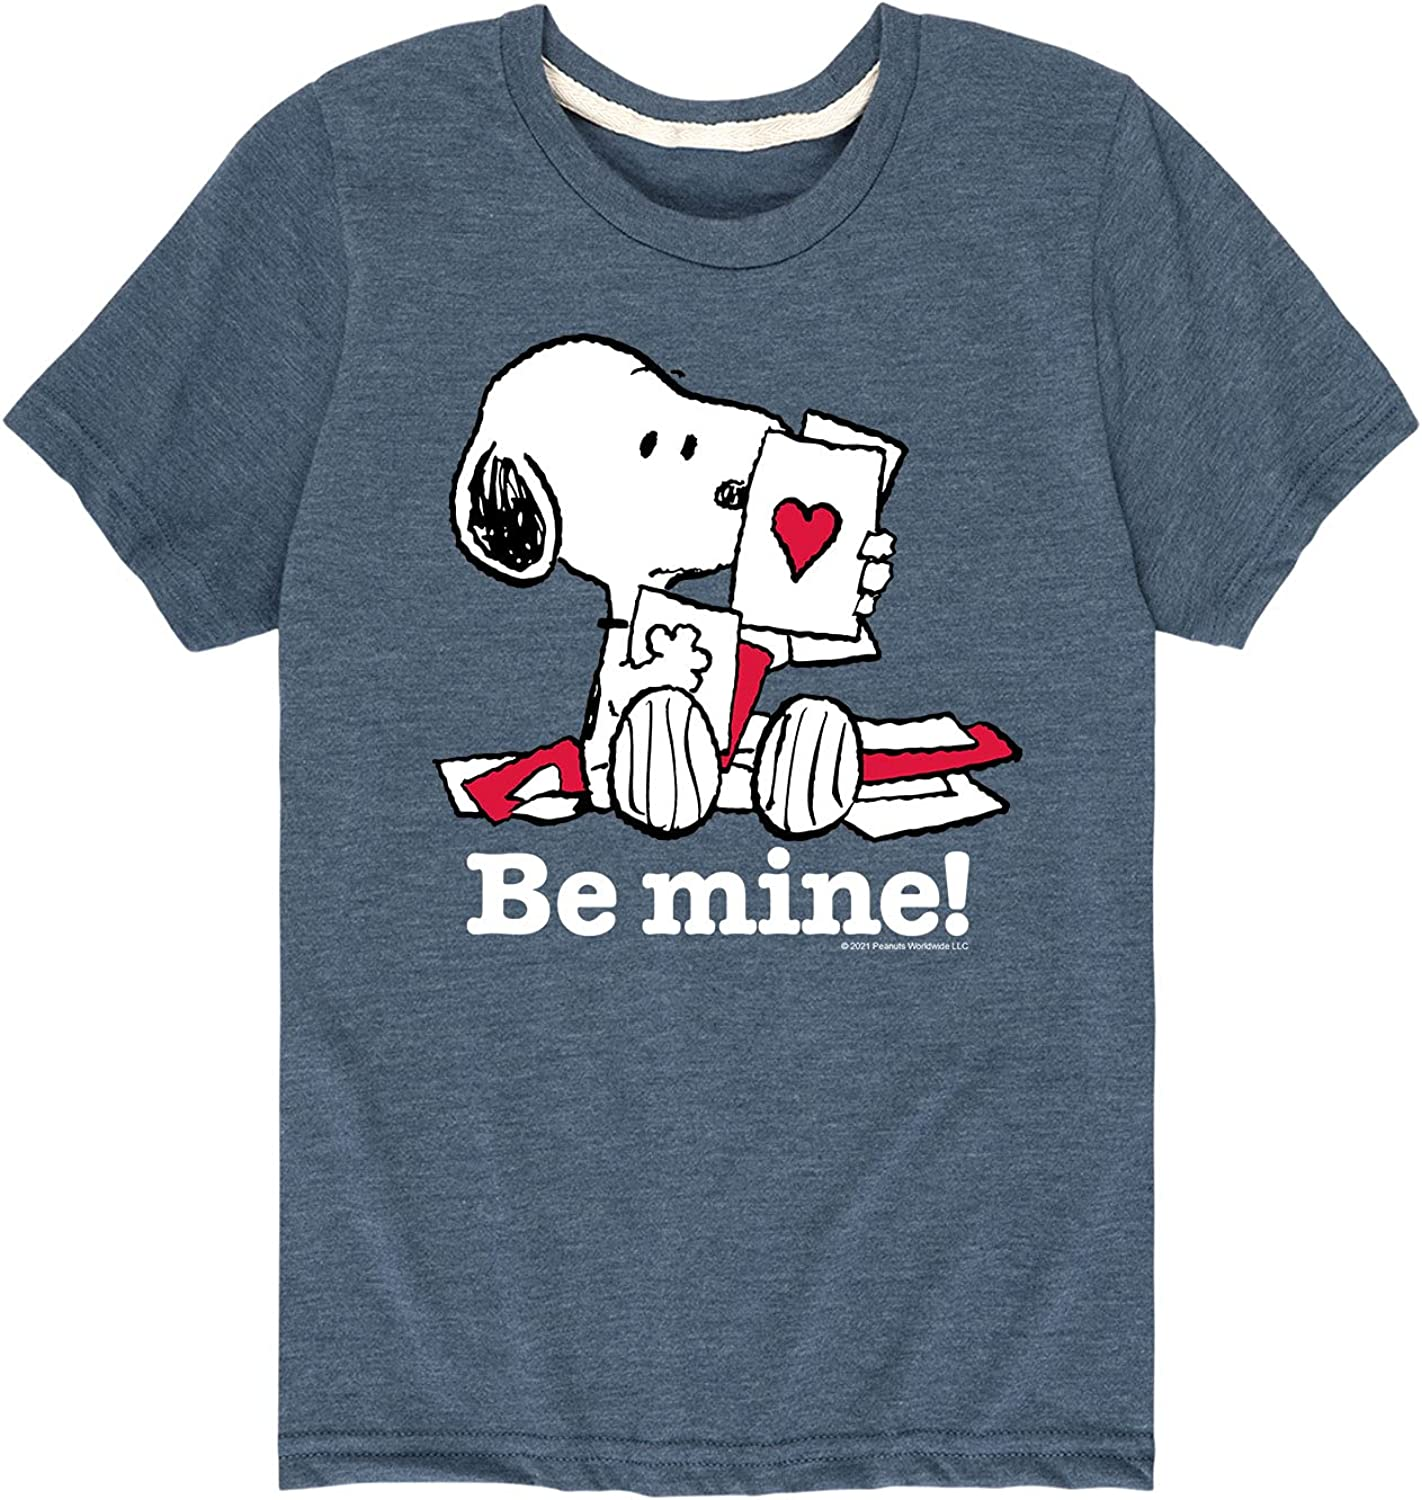 Peanuts - Be Mine Snoopy - Toddler and Youth Short Sleeve Graphic T-Shirt